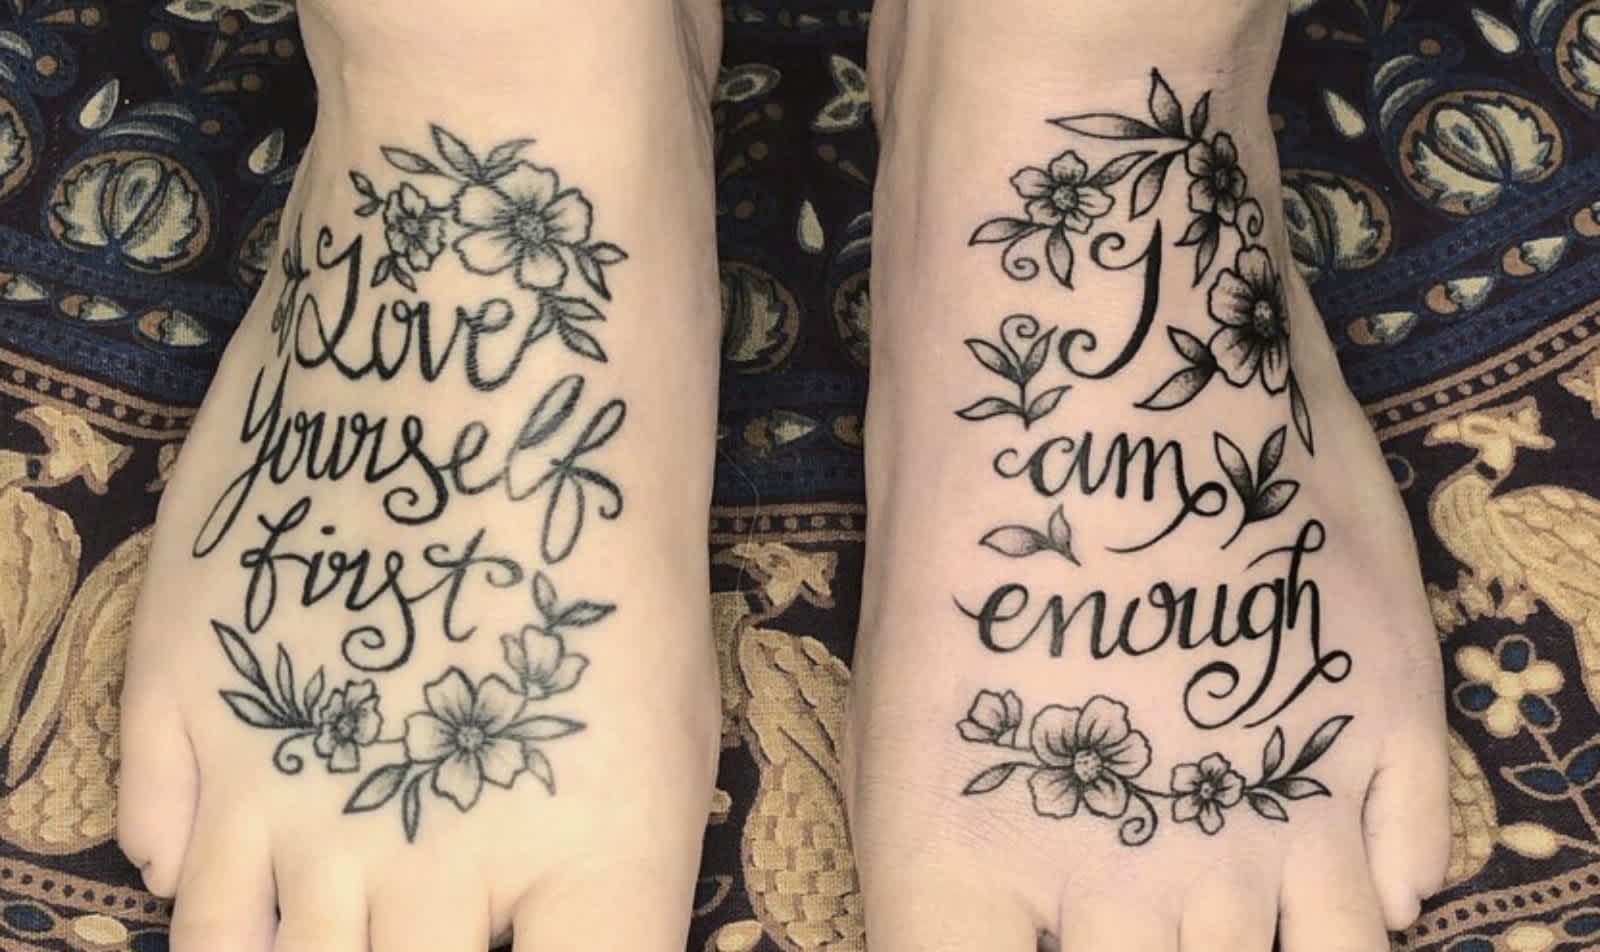 Pretty Proud Self Love Tattoos To Express Self Acceptance Cafemom Com